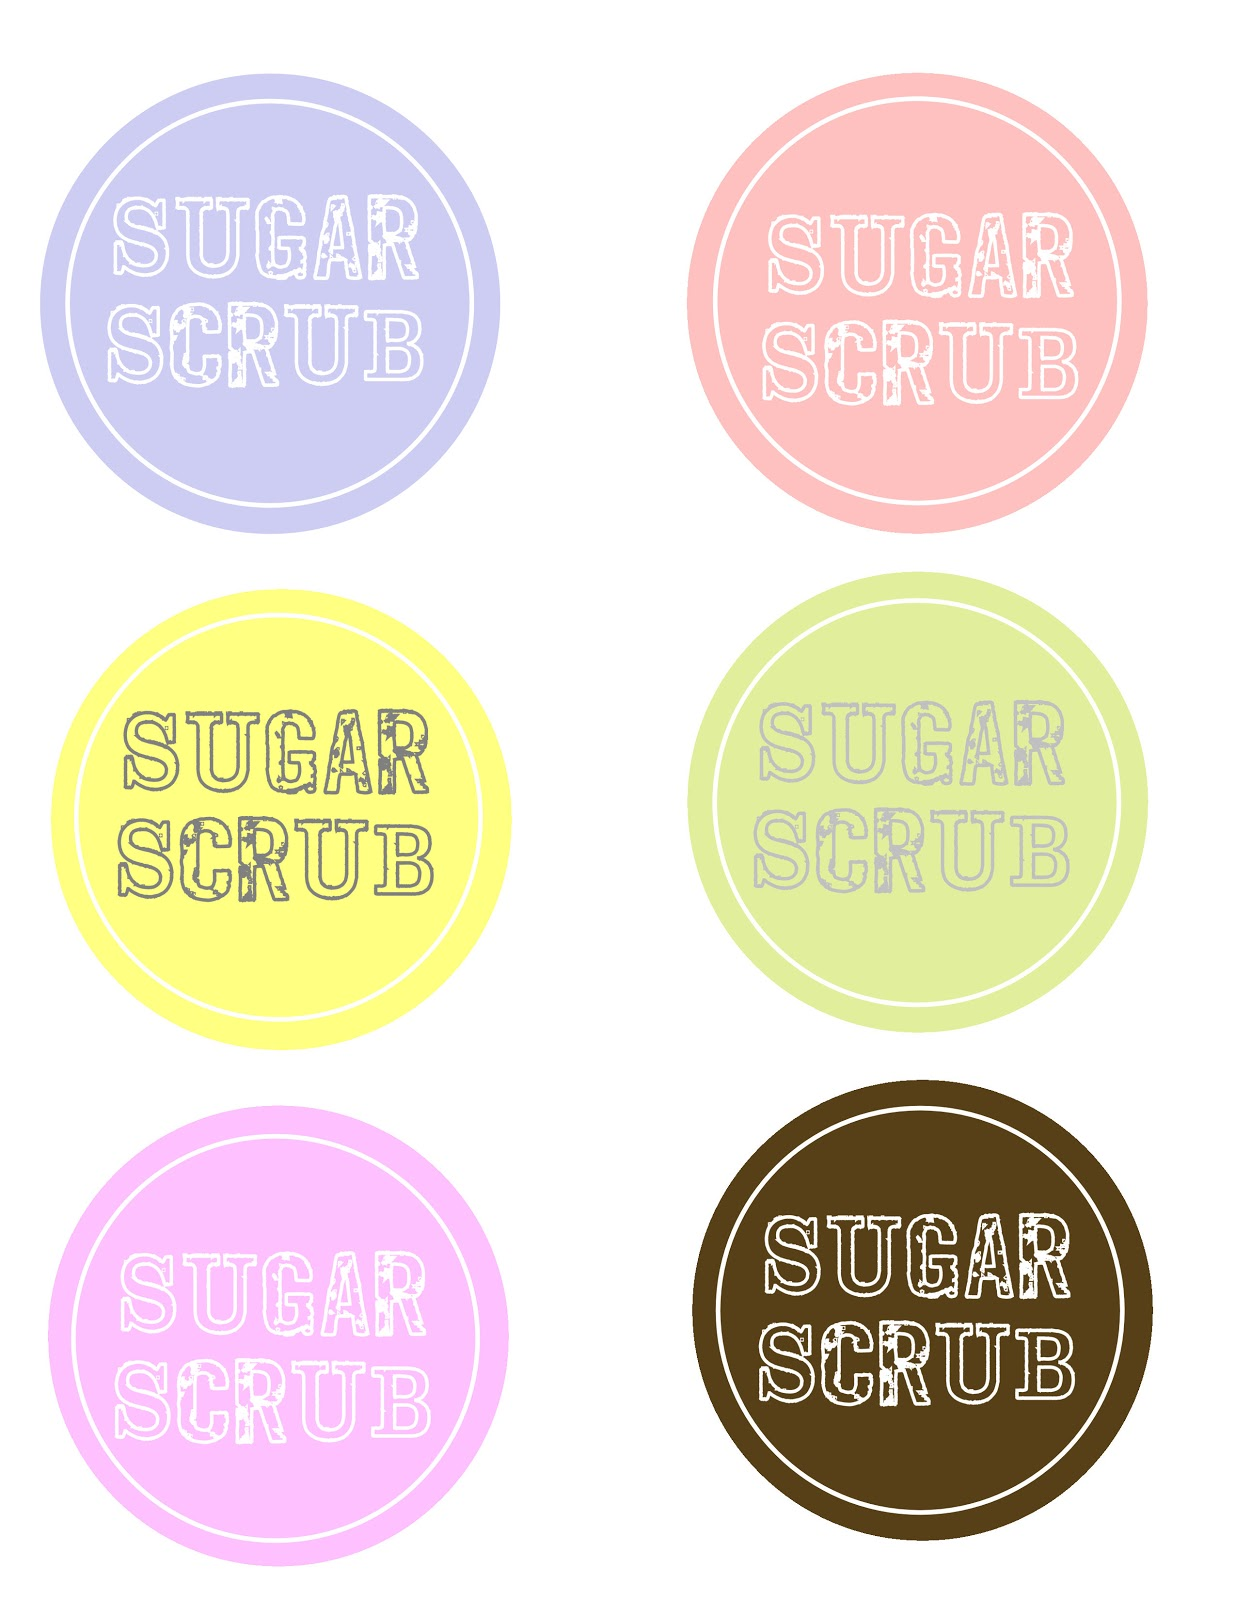 5 Images of Sugar Scrub Jar Label Printables